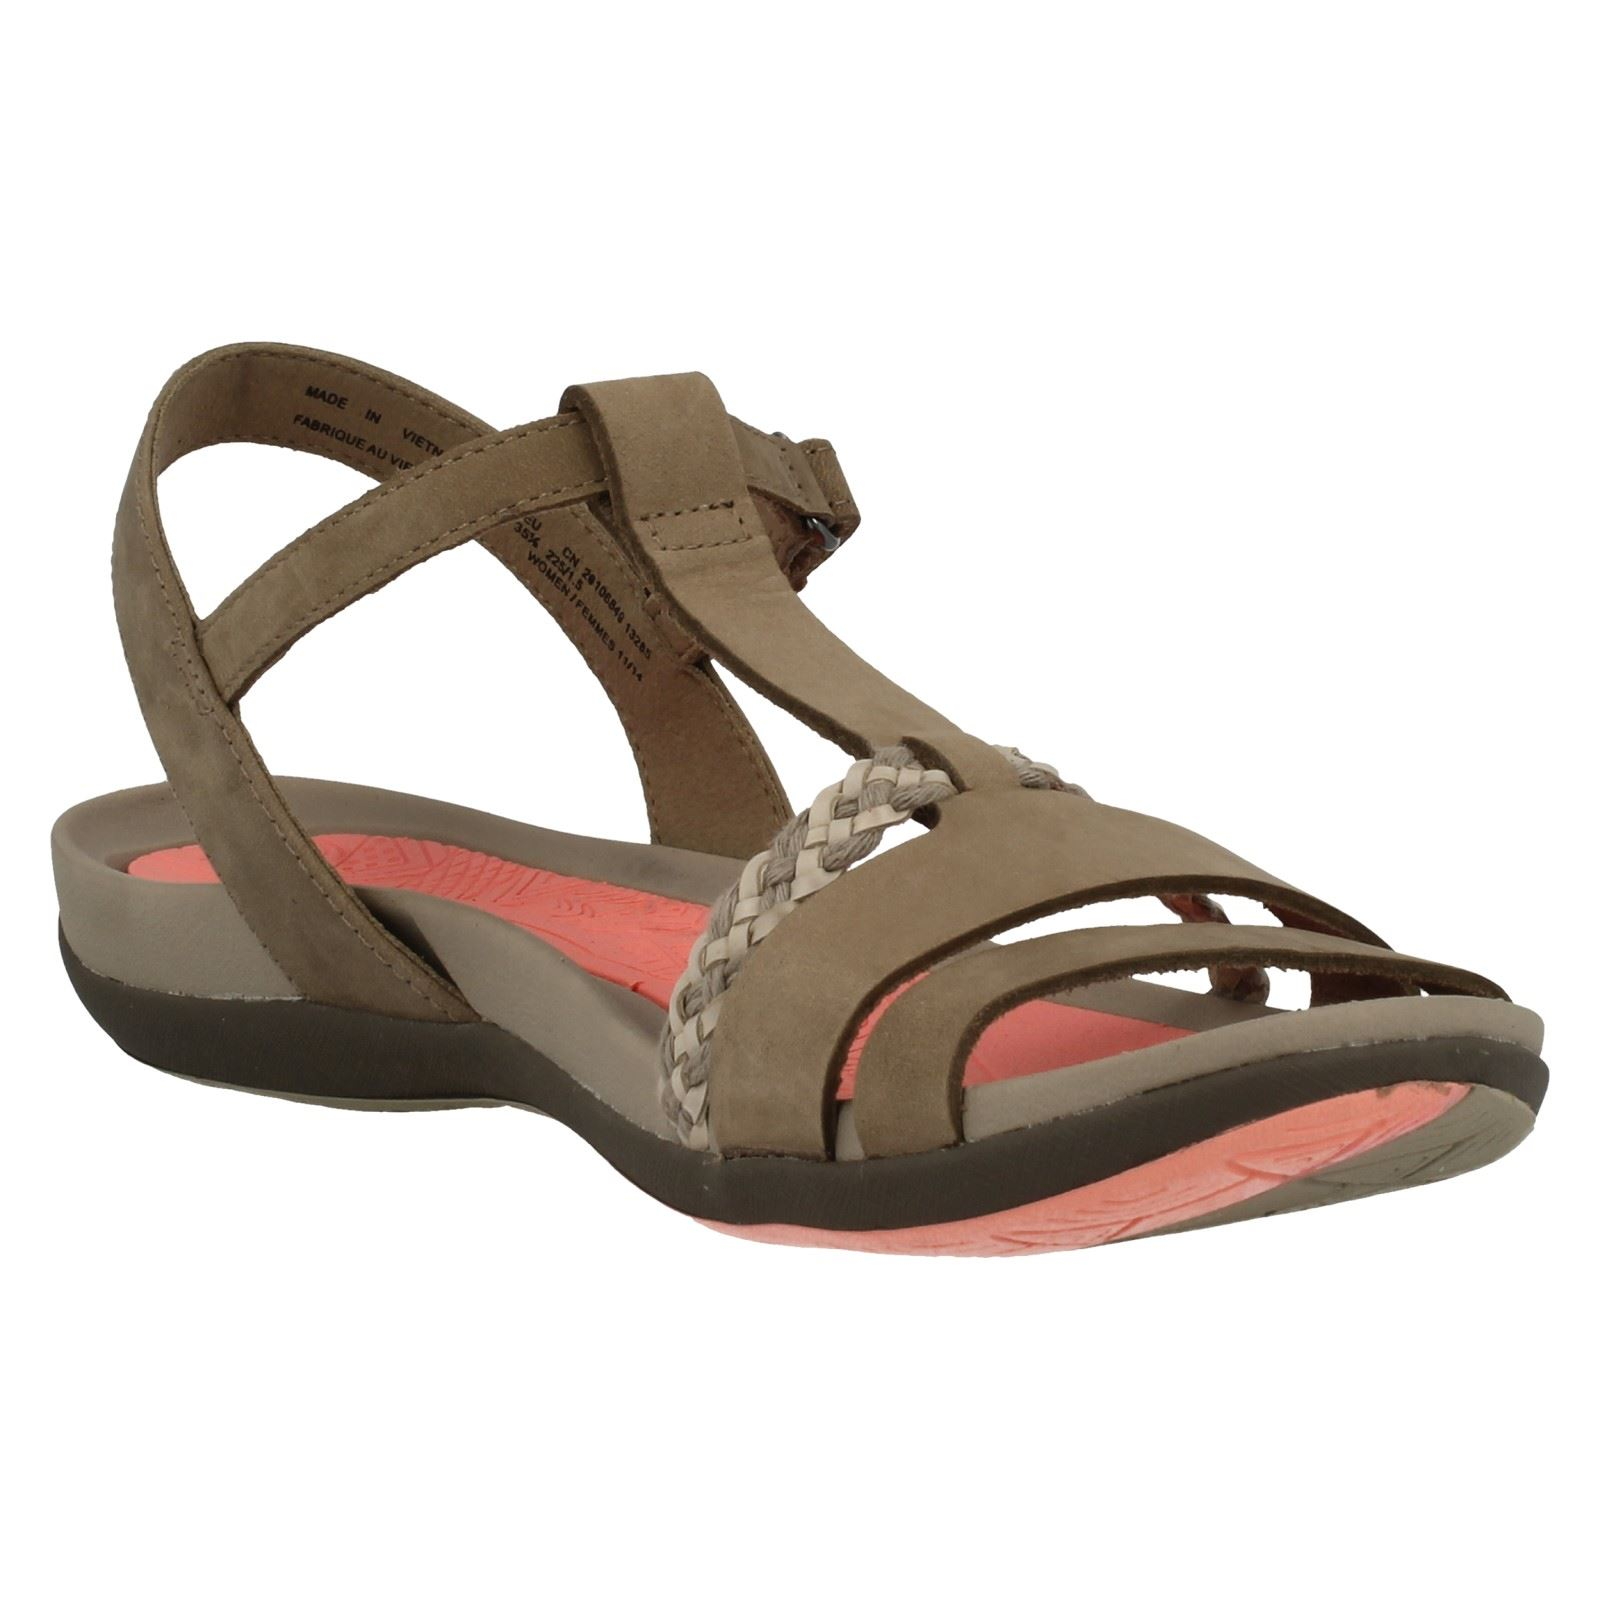 3472eb8a3a94 Ladies-Clarks-Casual-Sandals-Tealite-Grace thumbnail 65